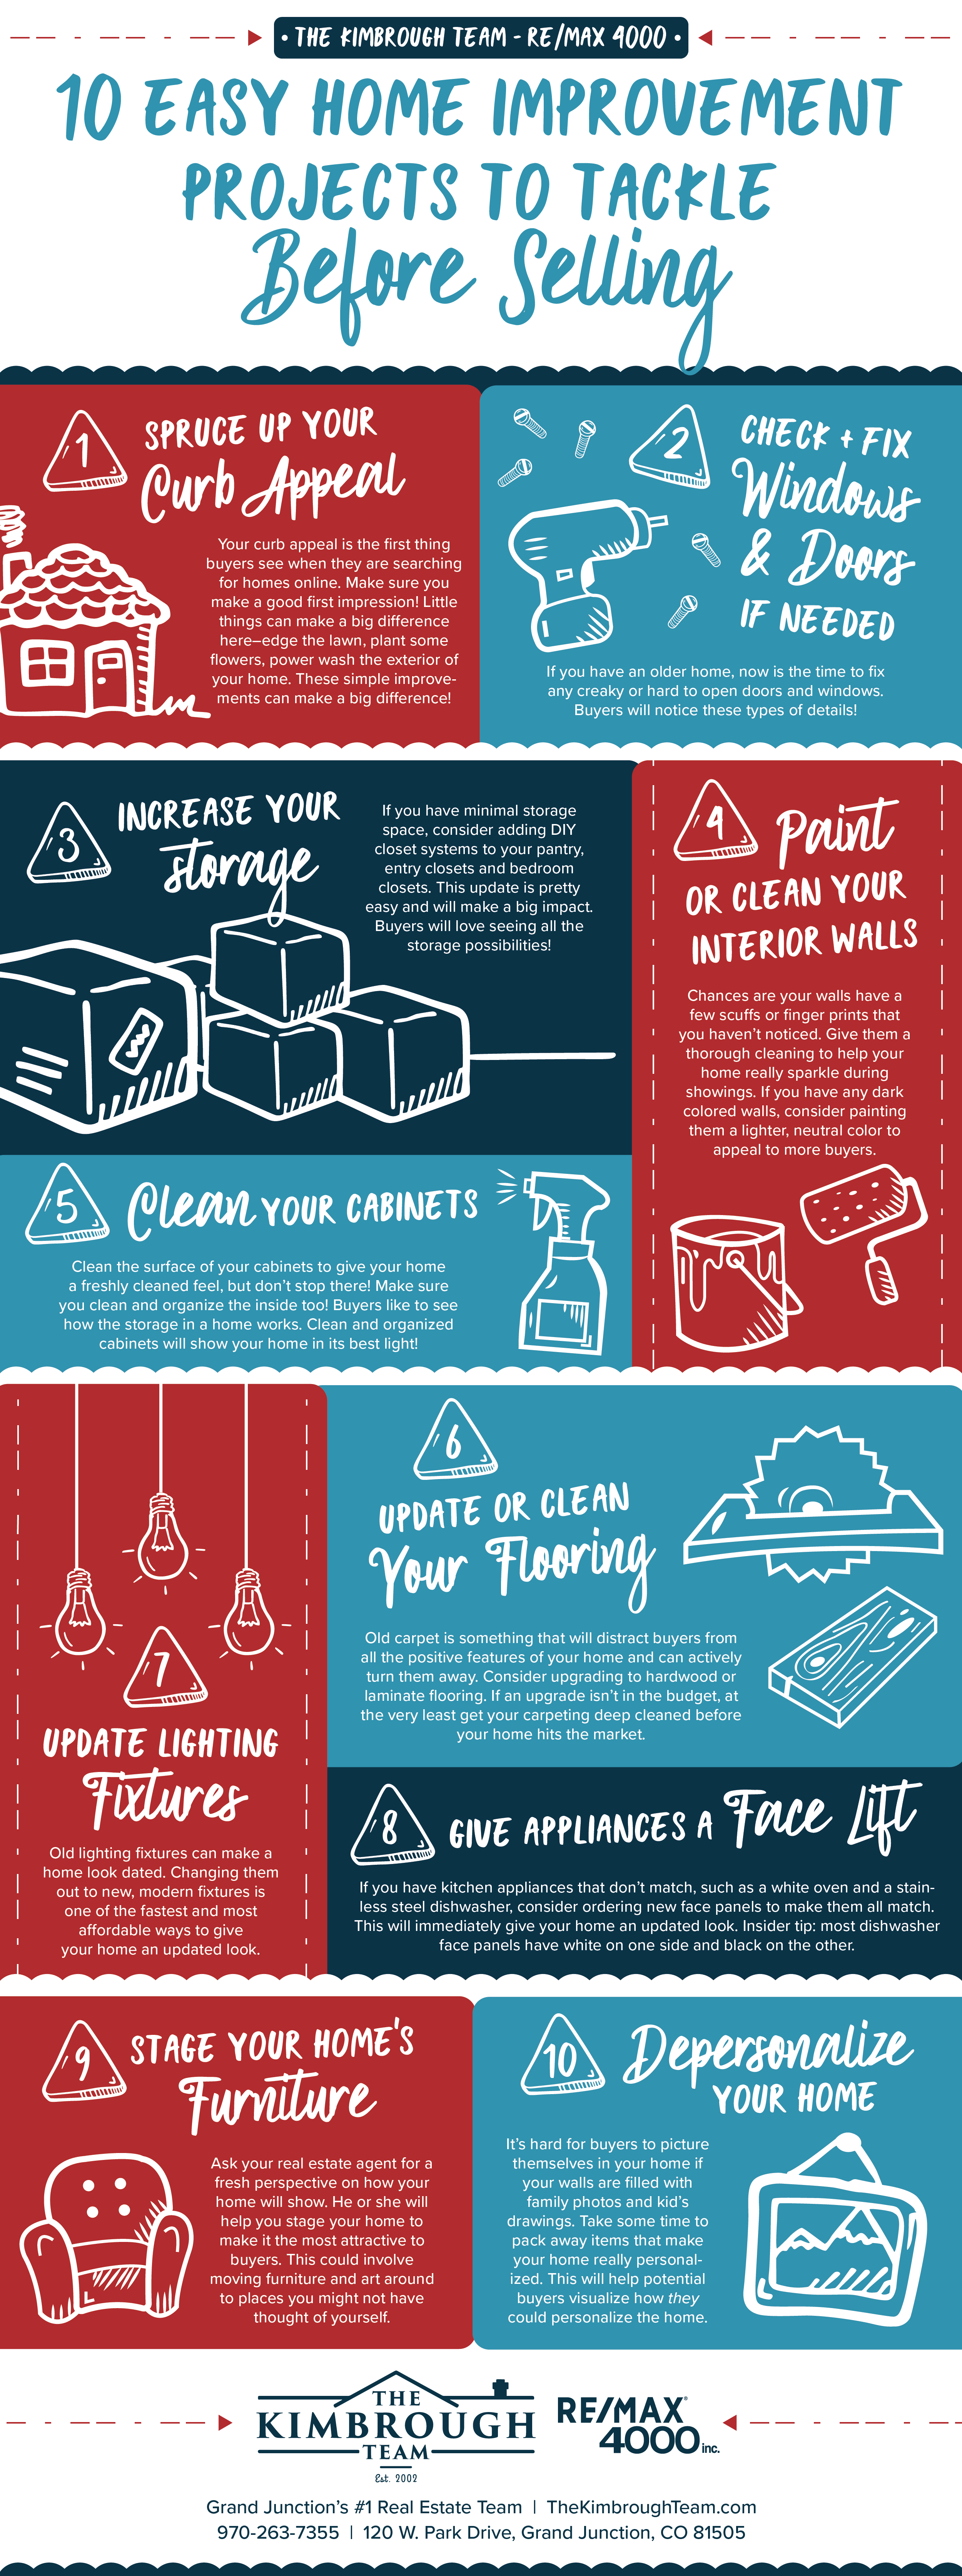 10 Easy Home Improvement Projects to Tackle Before Selling a House-01.png